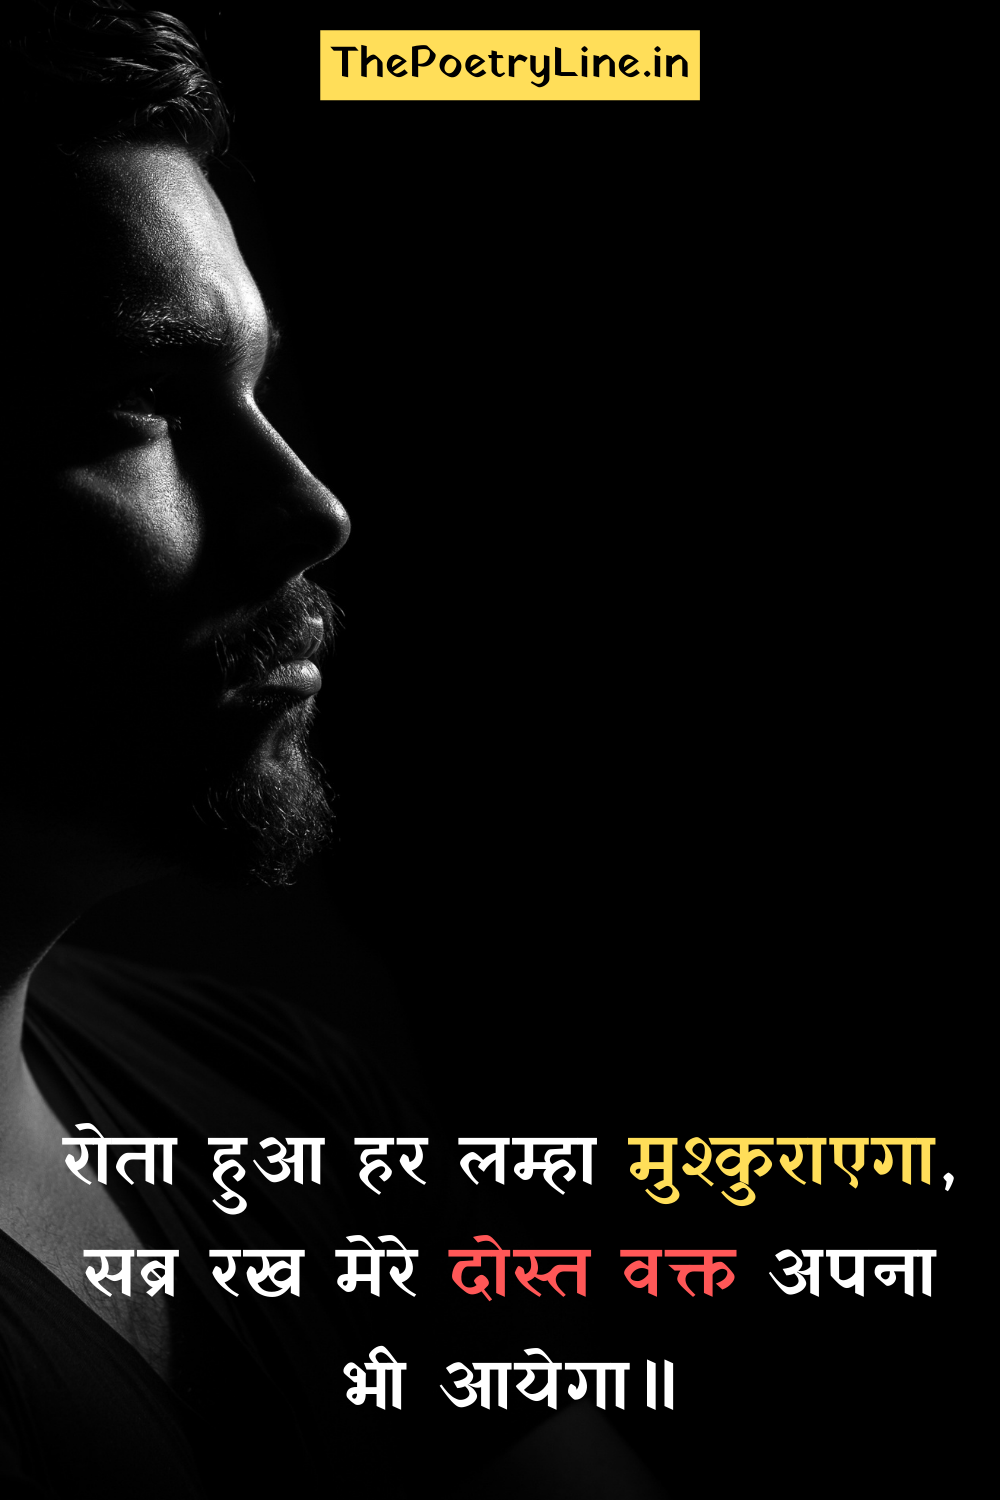 100 Motivational Quotes In Hindi With Images Best Latest Motivational Quotes In Hindi Motivational Status Hindi Quotes